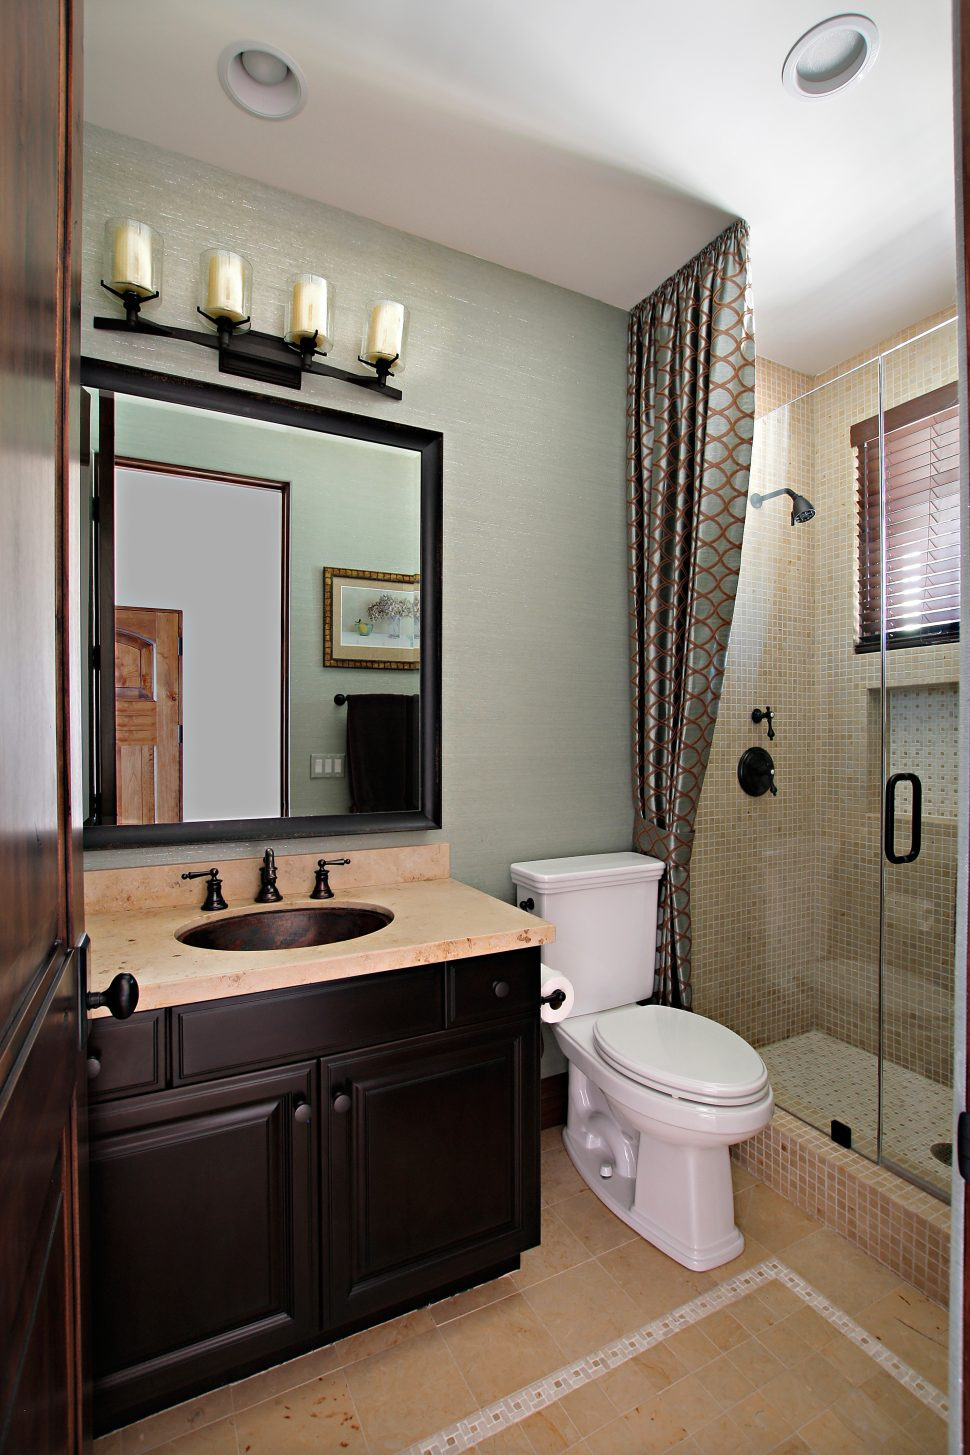 Small Bathroom Decorating Ideas Awesome Bathroom Beautiful Small Bathroom Ideas for Small